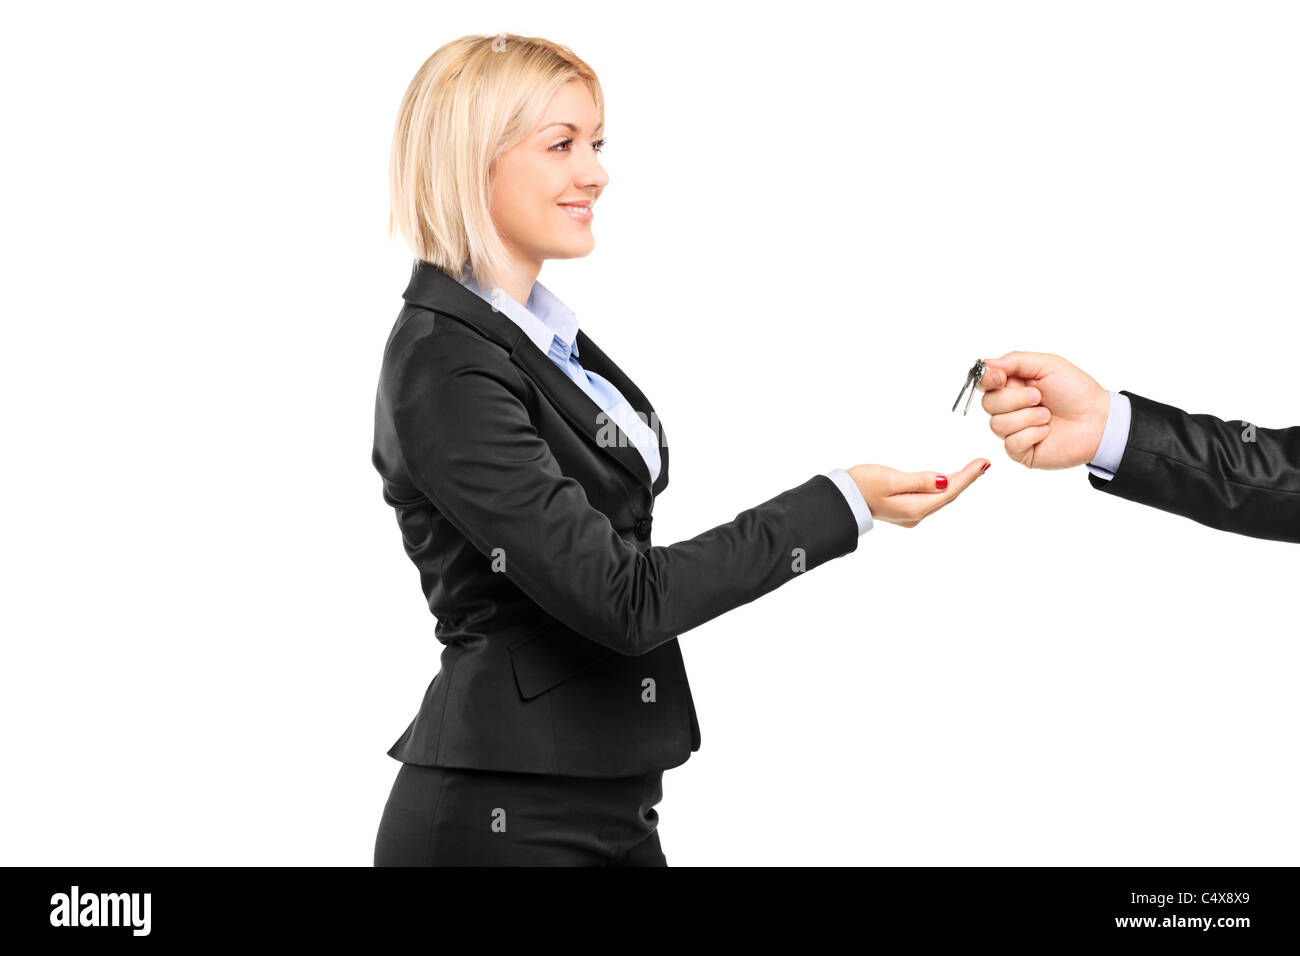 A blond businesswoman taking a key from a businessman - Stock Image